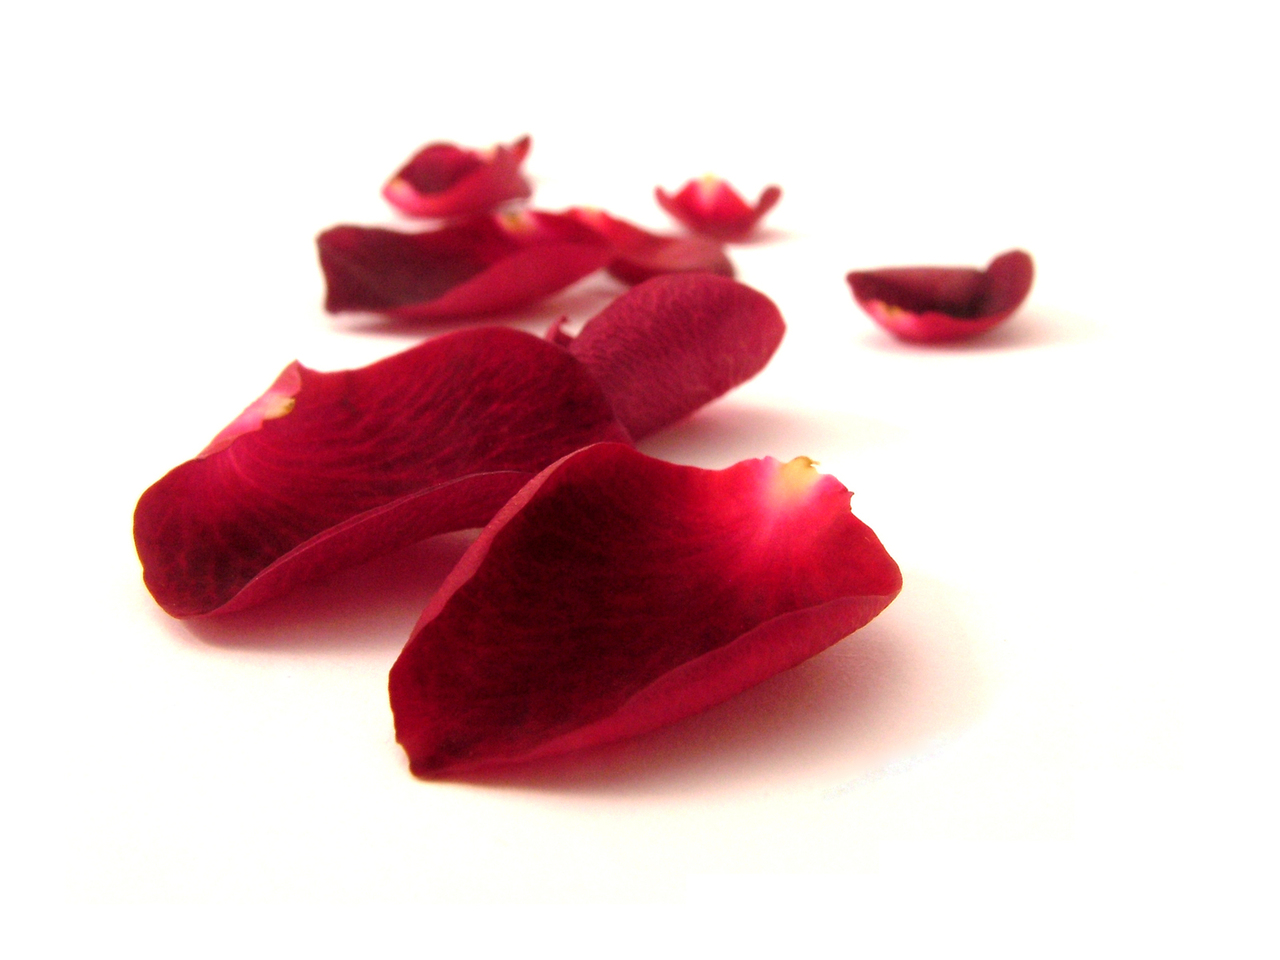 How to preserve rose petals